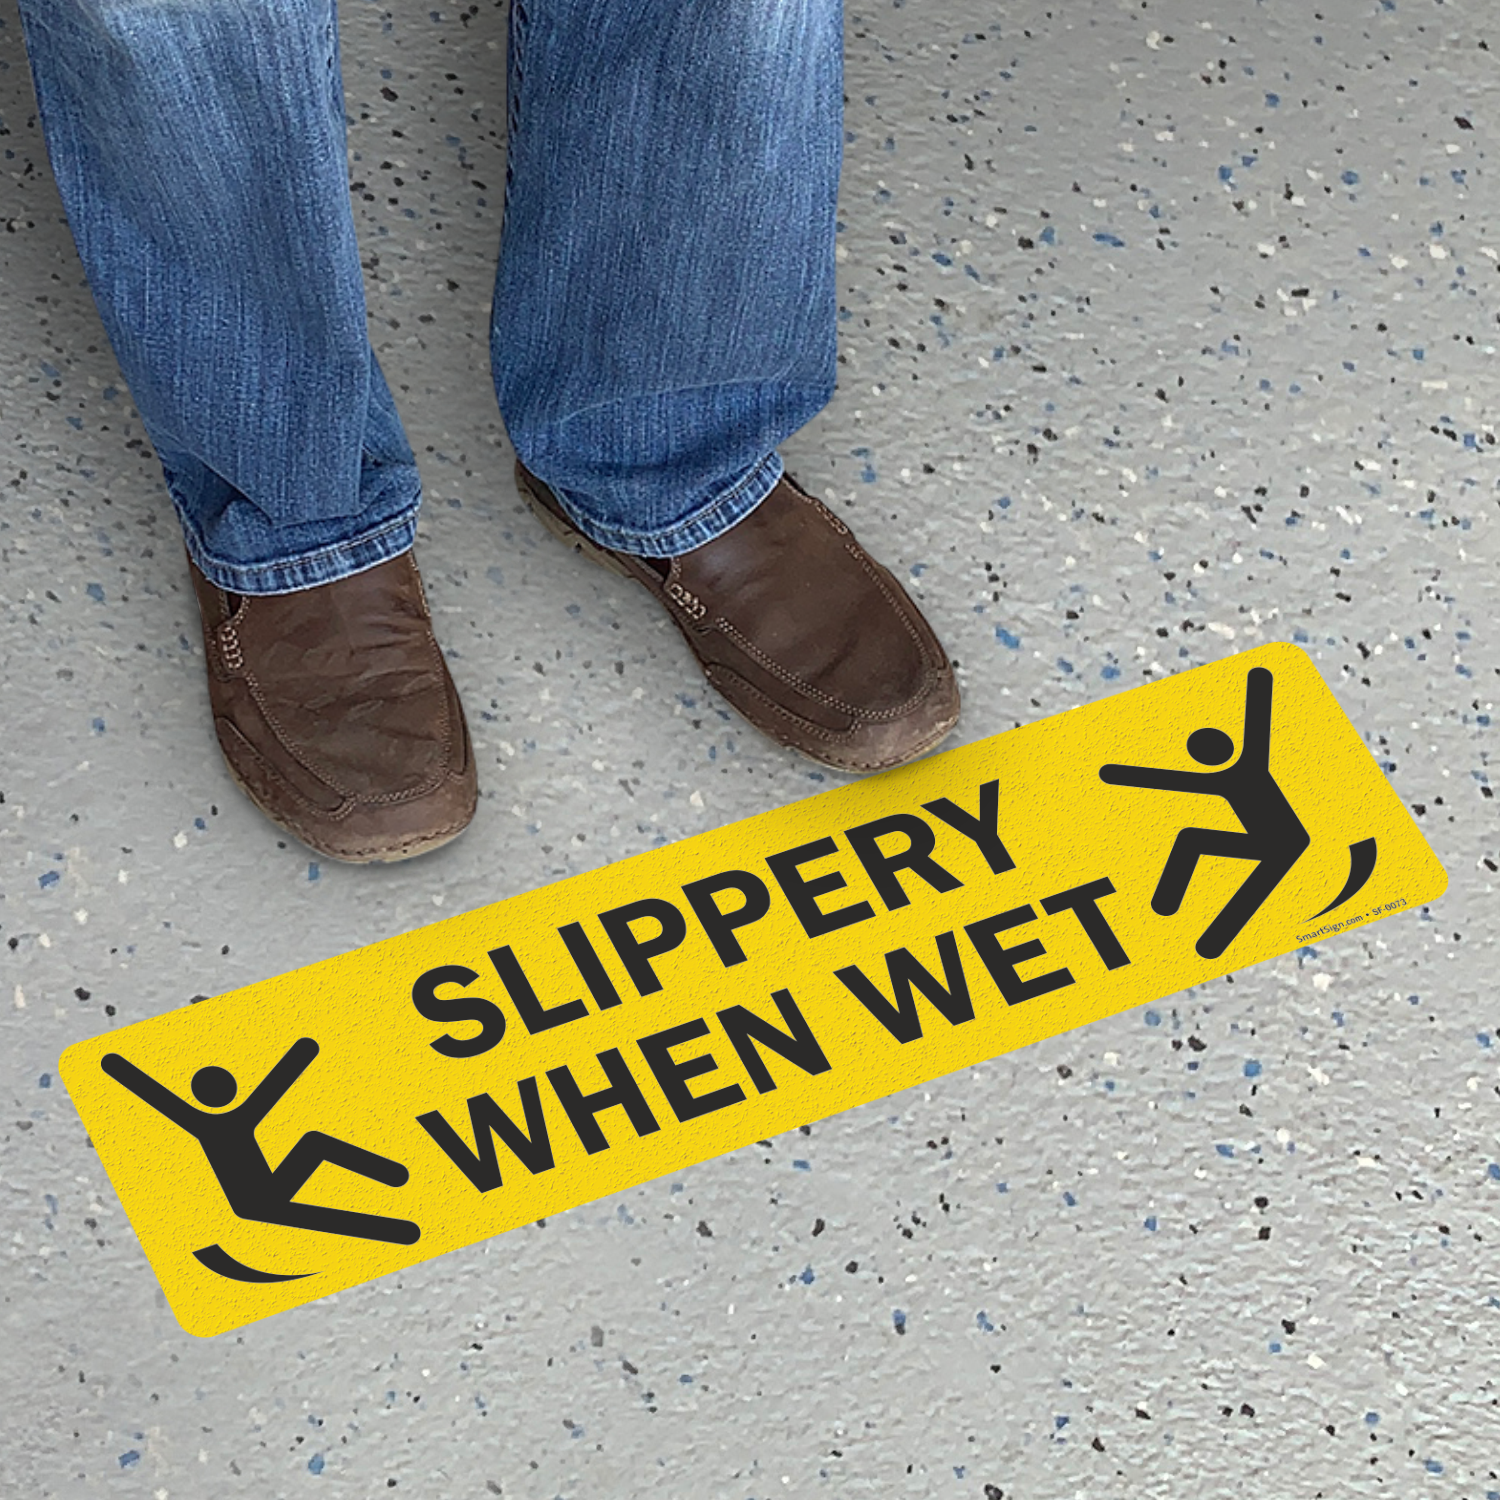 Slippery When Wet Floor Slipsafe And Gripguard Sign Sku